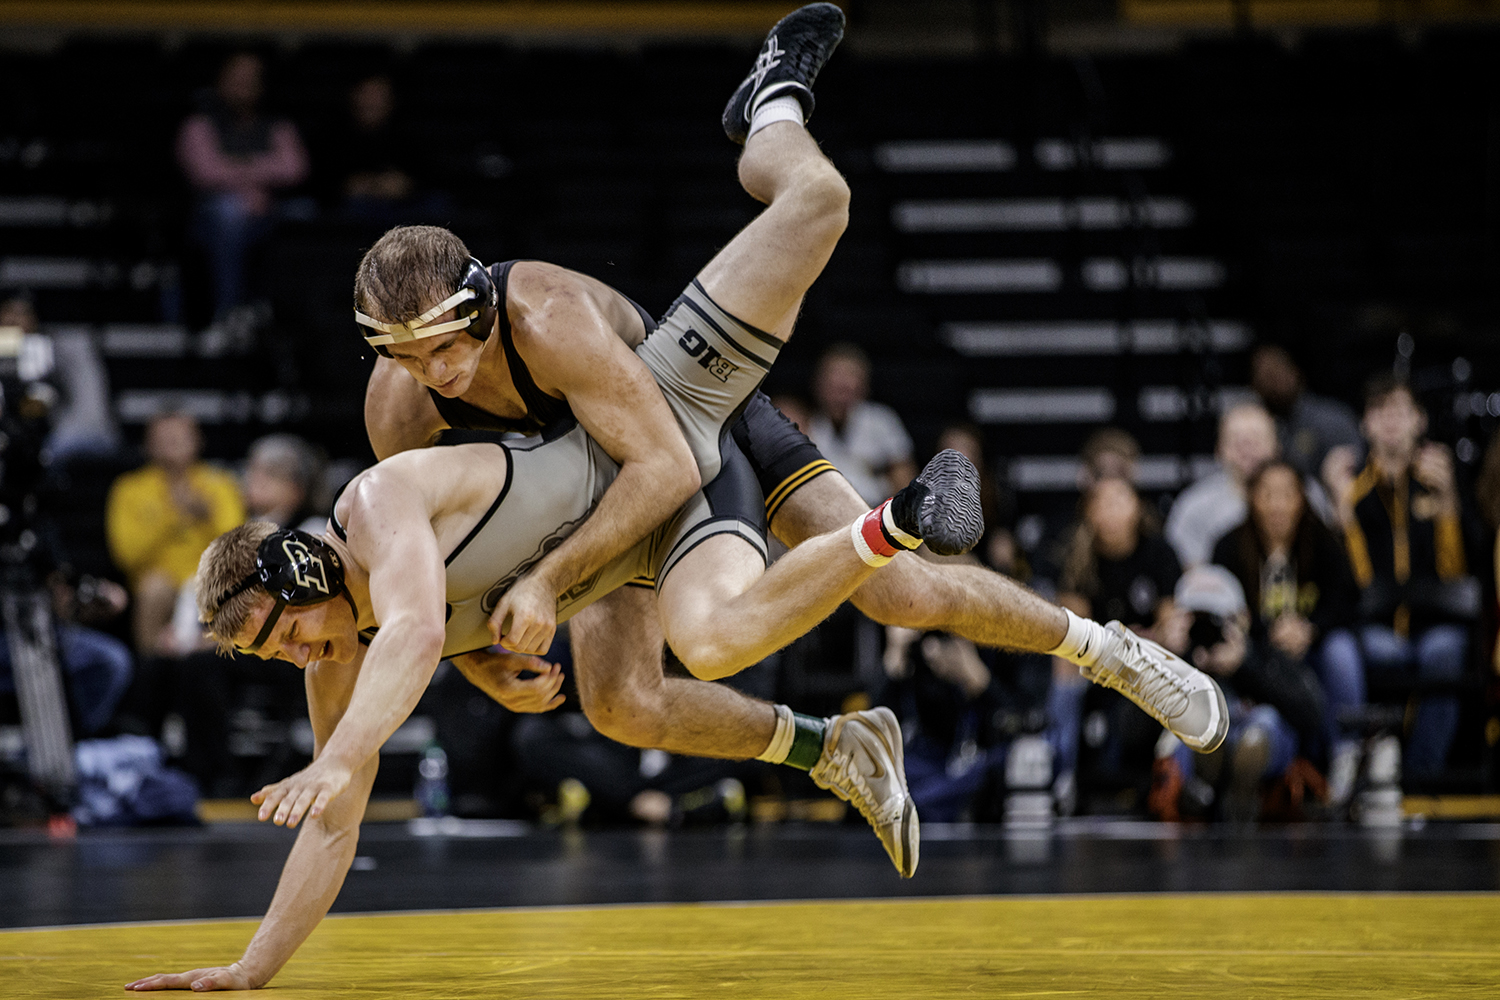 Iowa's Carter Happel takes down Purdue's Parker Filius during Iowa's dual meet against Purdue at Carver-Hawkeye Arena in Iowa City on Saturday, Nov. 24, 2018. Happel defeated Filus 2-0 and The Hawkeyes defeated the Boilermakers 26-9.